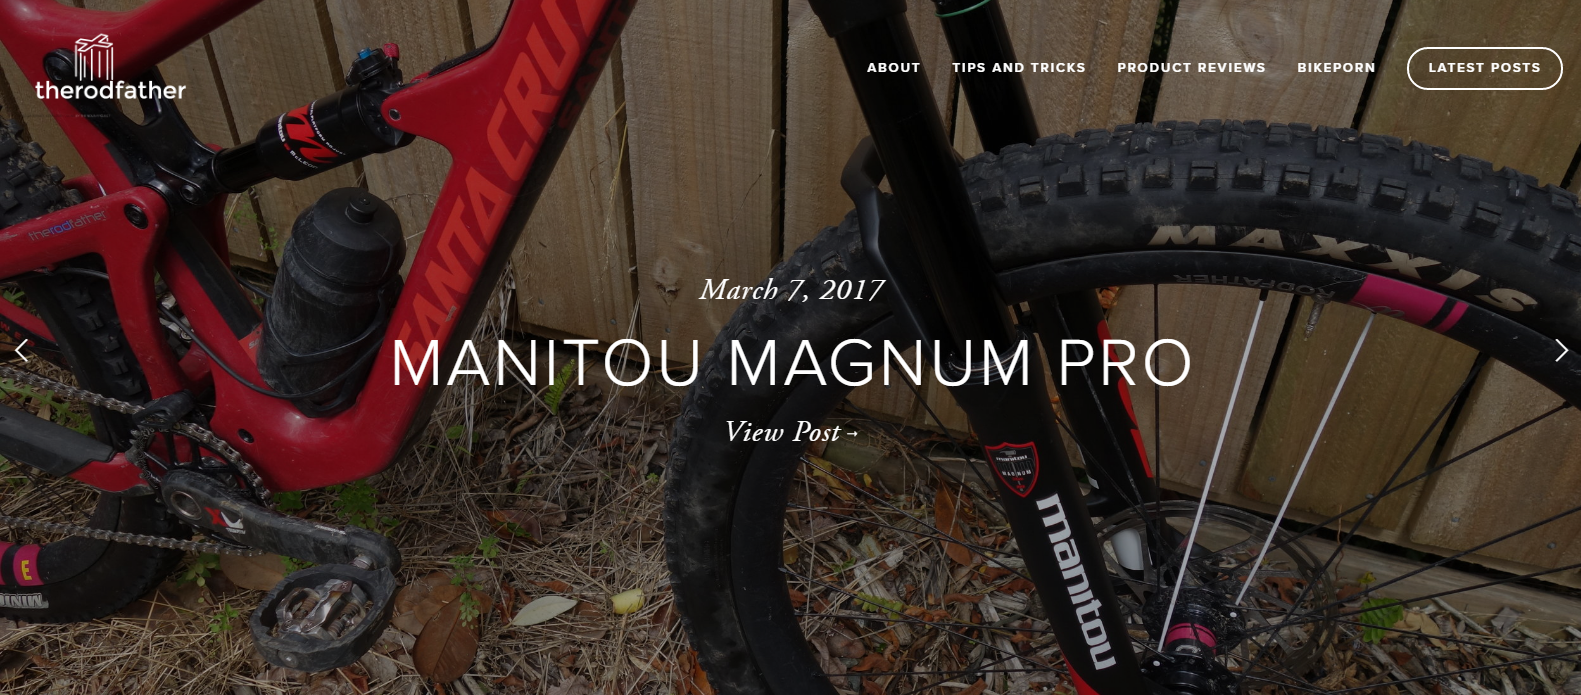 Manitou Magnum Pro Review